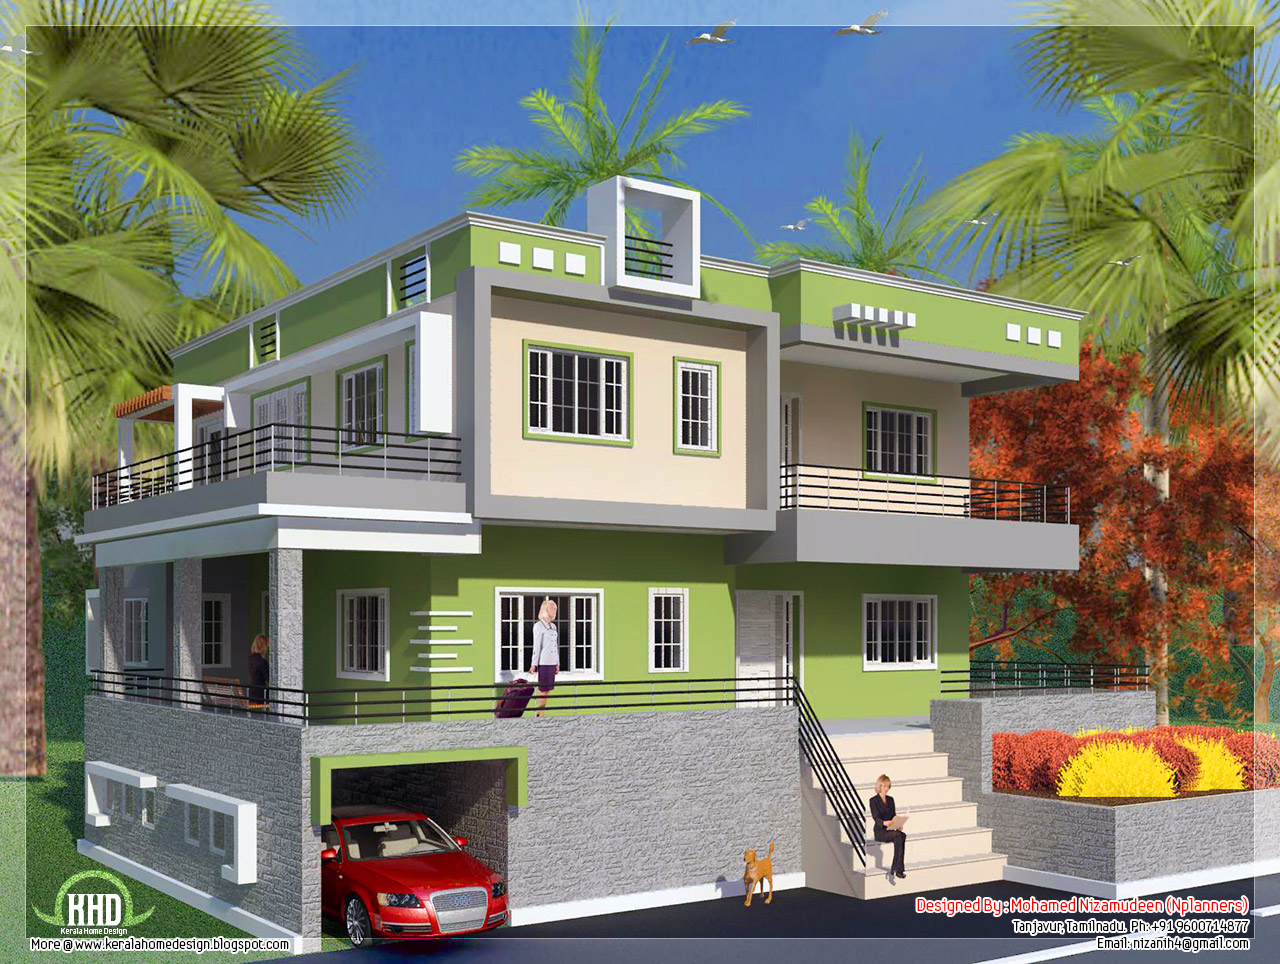 "0comments on ""North Indian style minimalist house exterior design"""